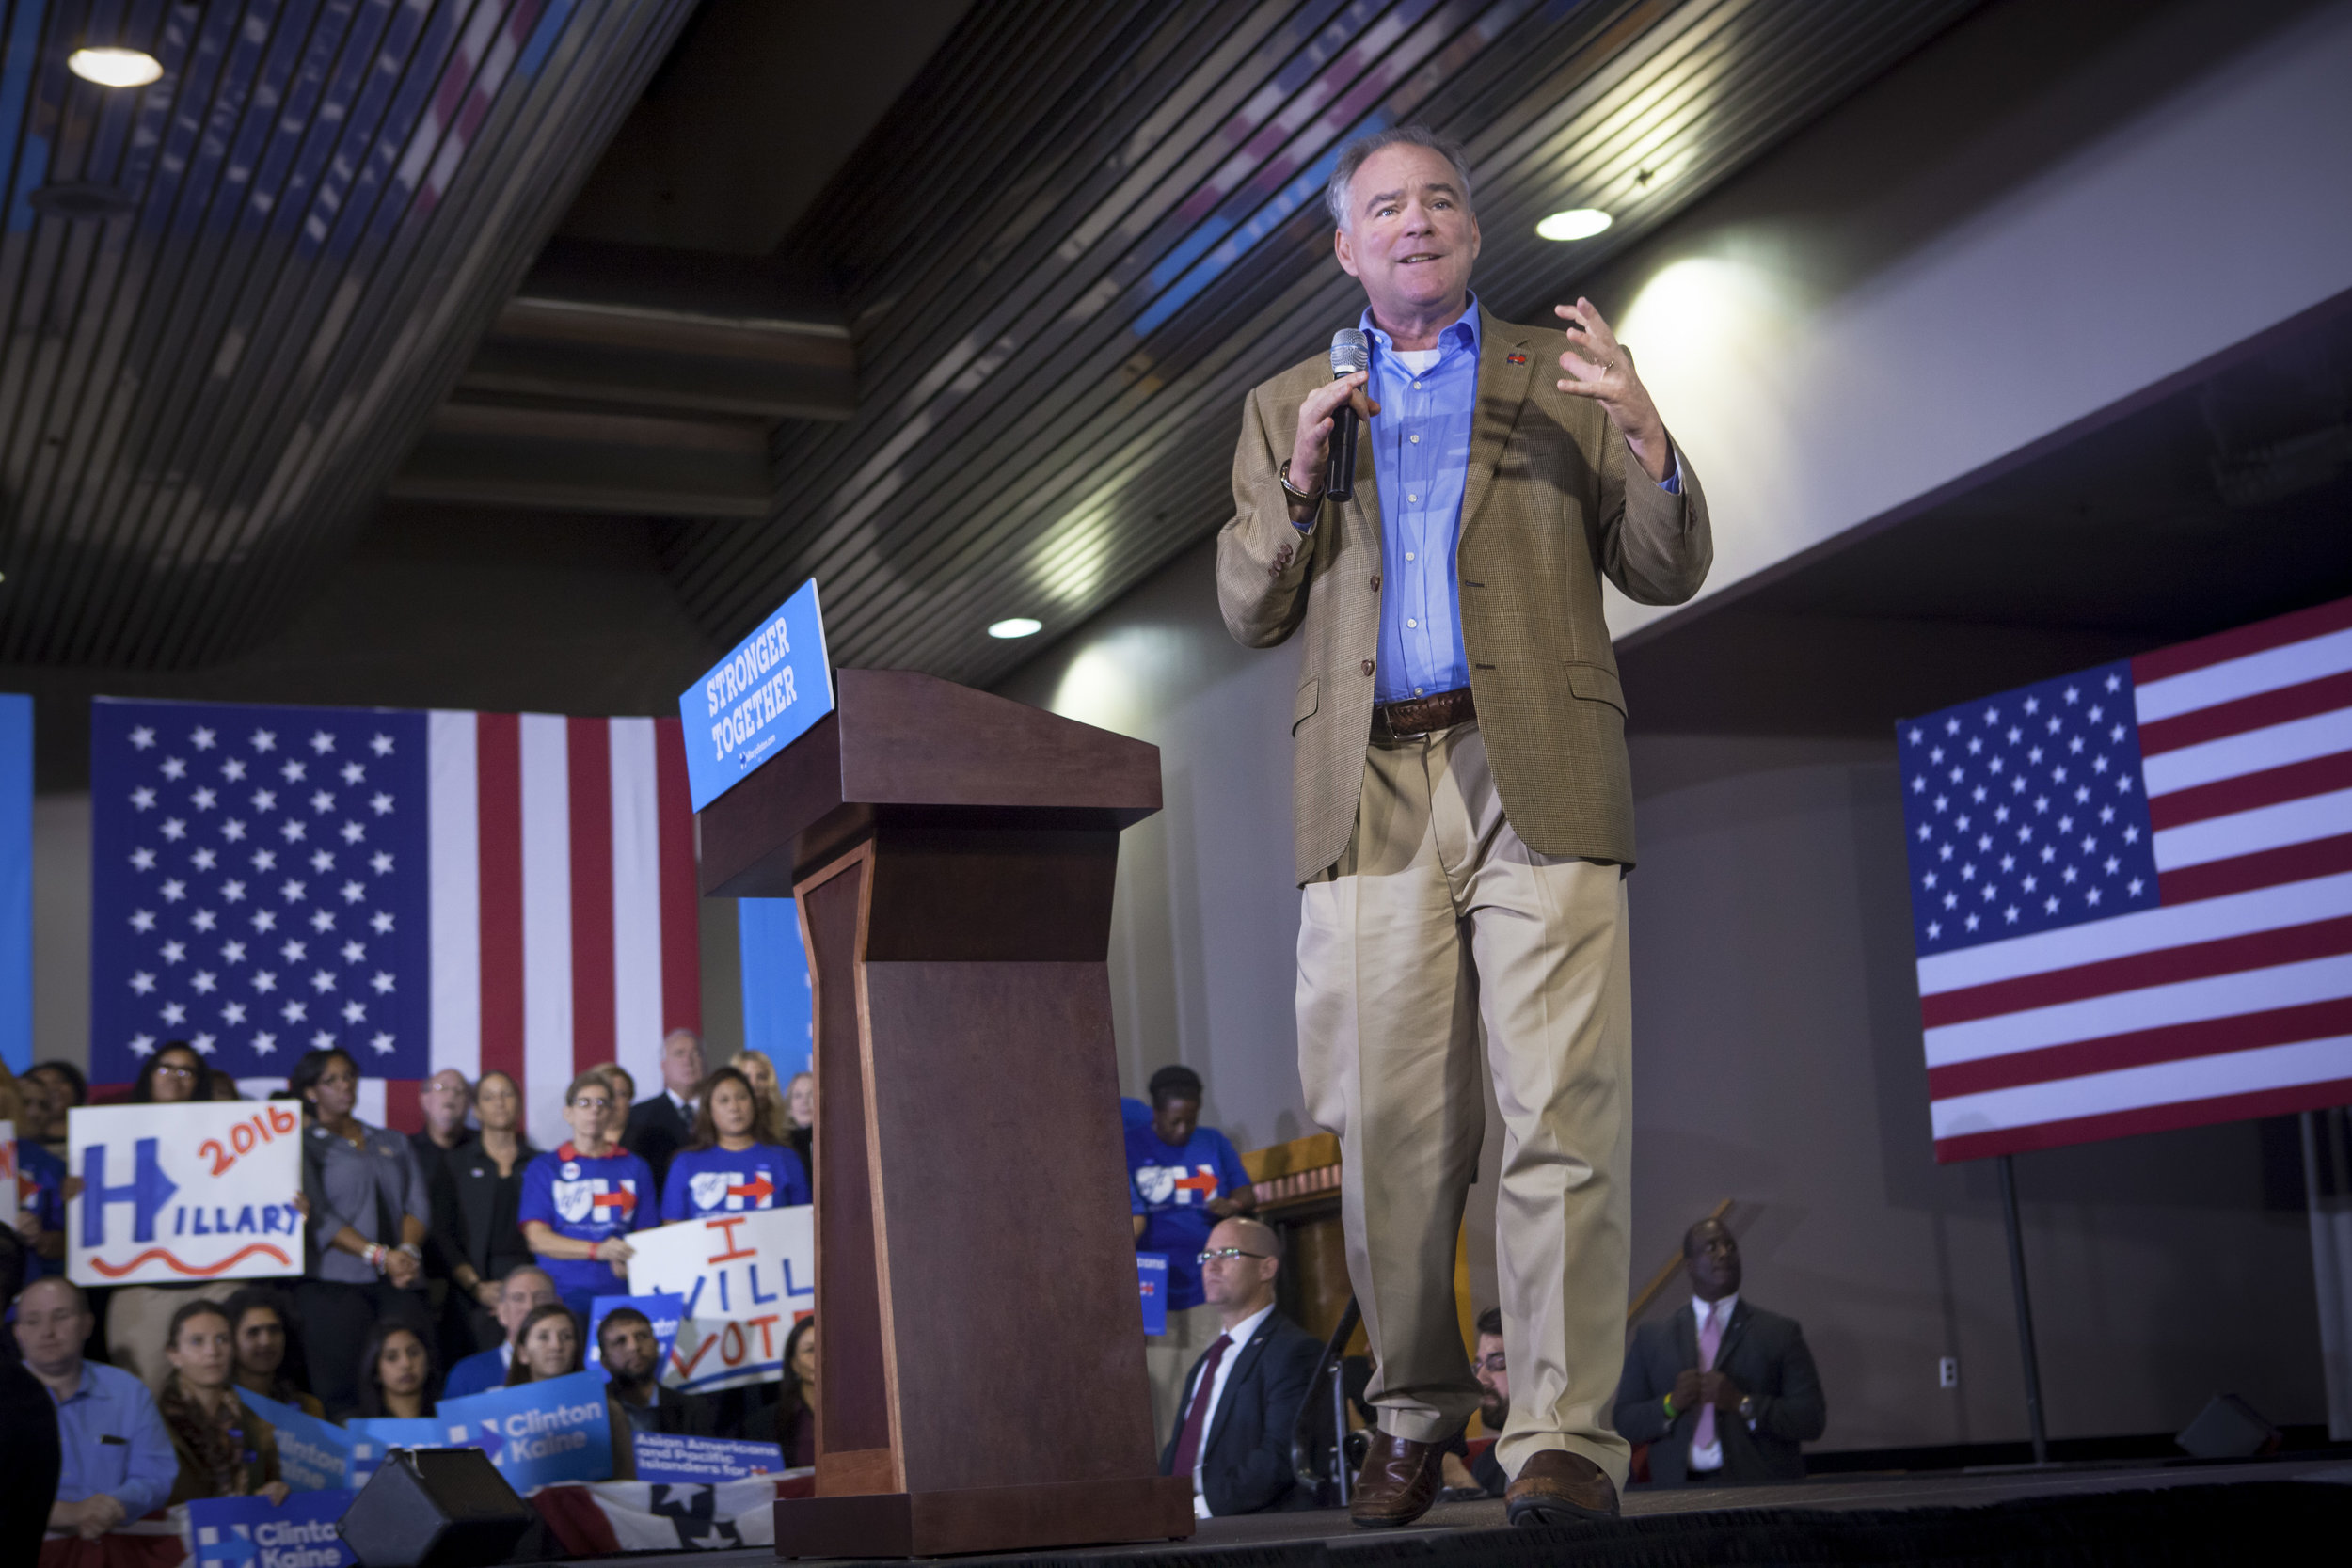 10052016_BJM_Tim_Kaine_Campaigns_in_Philadelphia_Pennsylvania_24.jpg